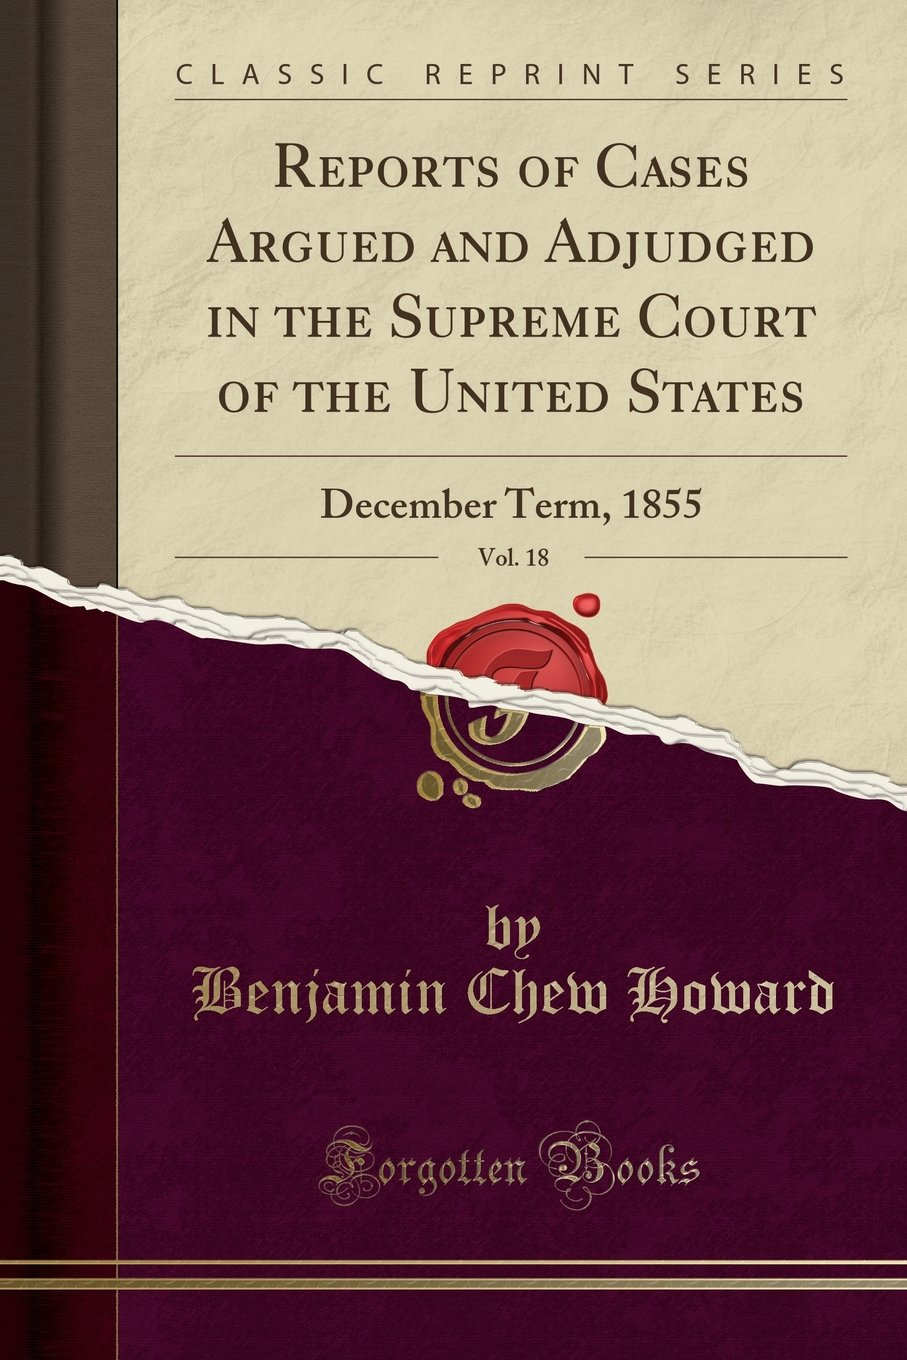 Download Reports of Cases Argued and Adjudged in the Supreme Court of the United States, Vol. 18: December Term, 1855 (Classic Reprint) pdf